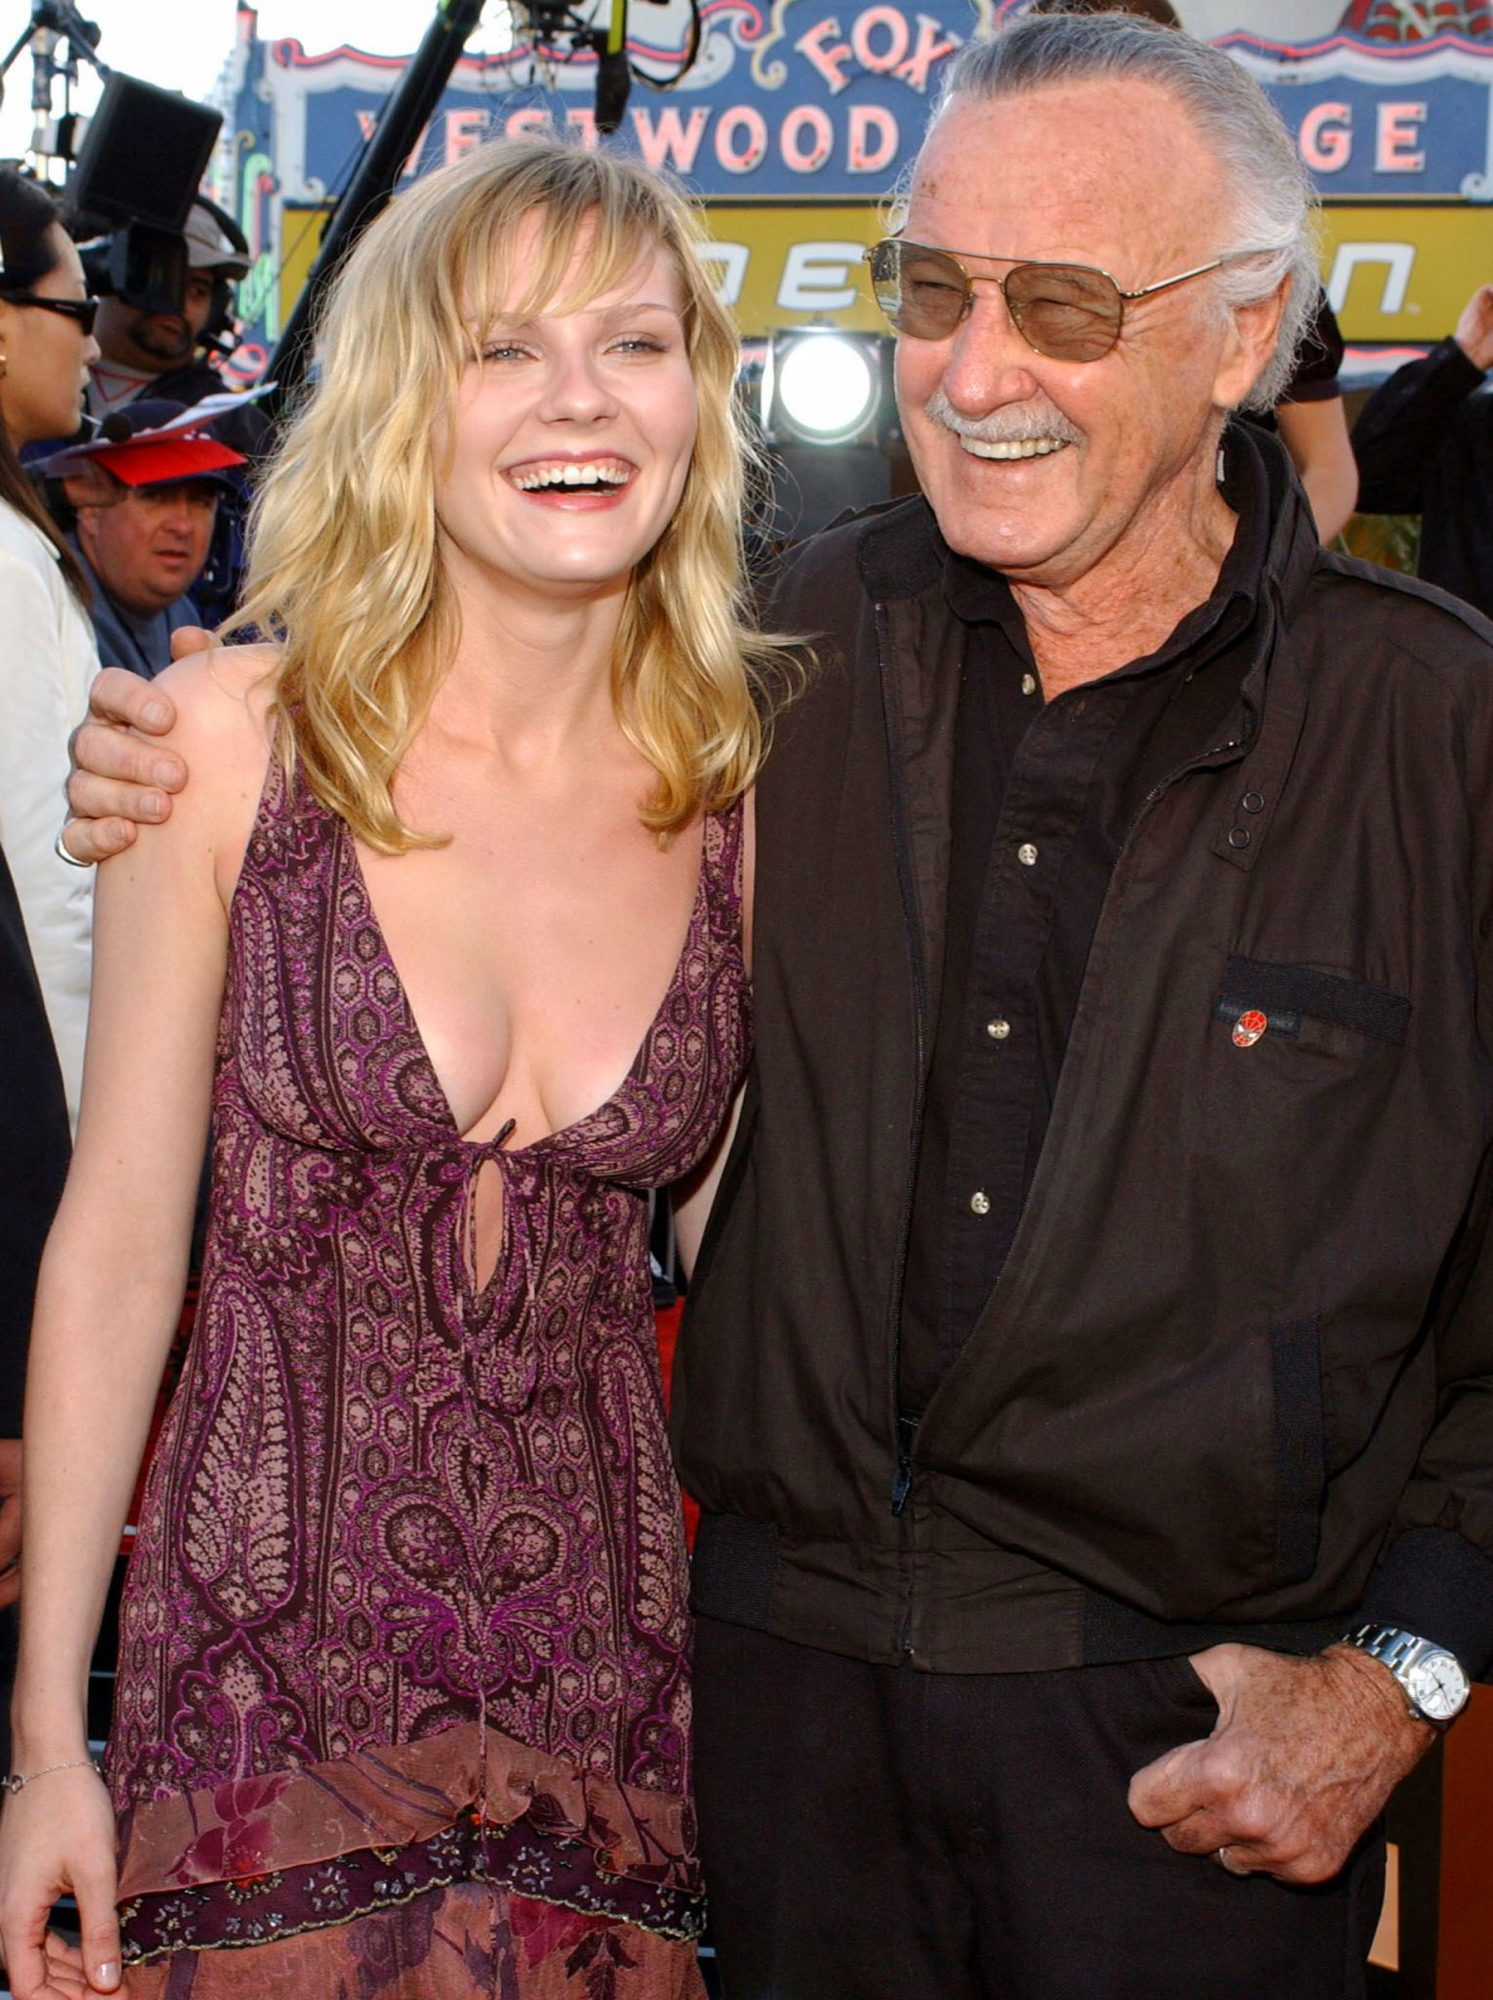 US actress Kirsten Dunst (L) poses with Stan Lee